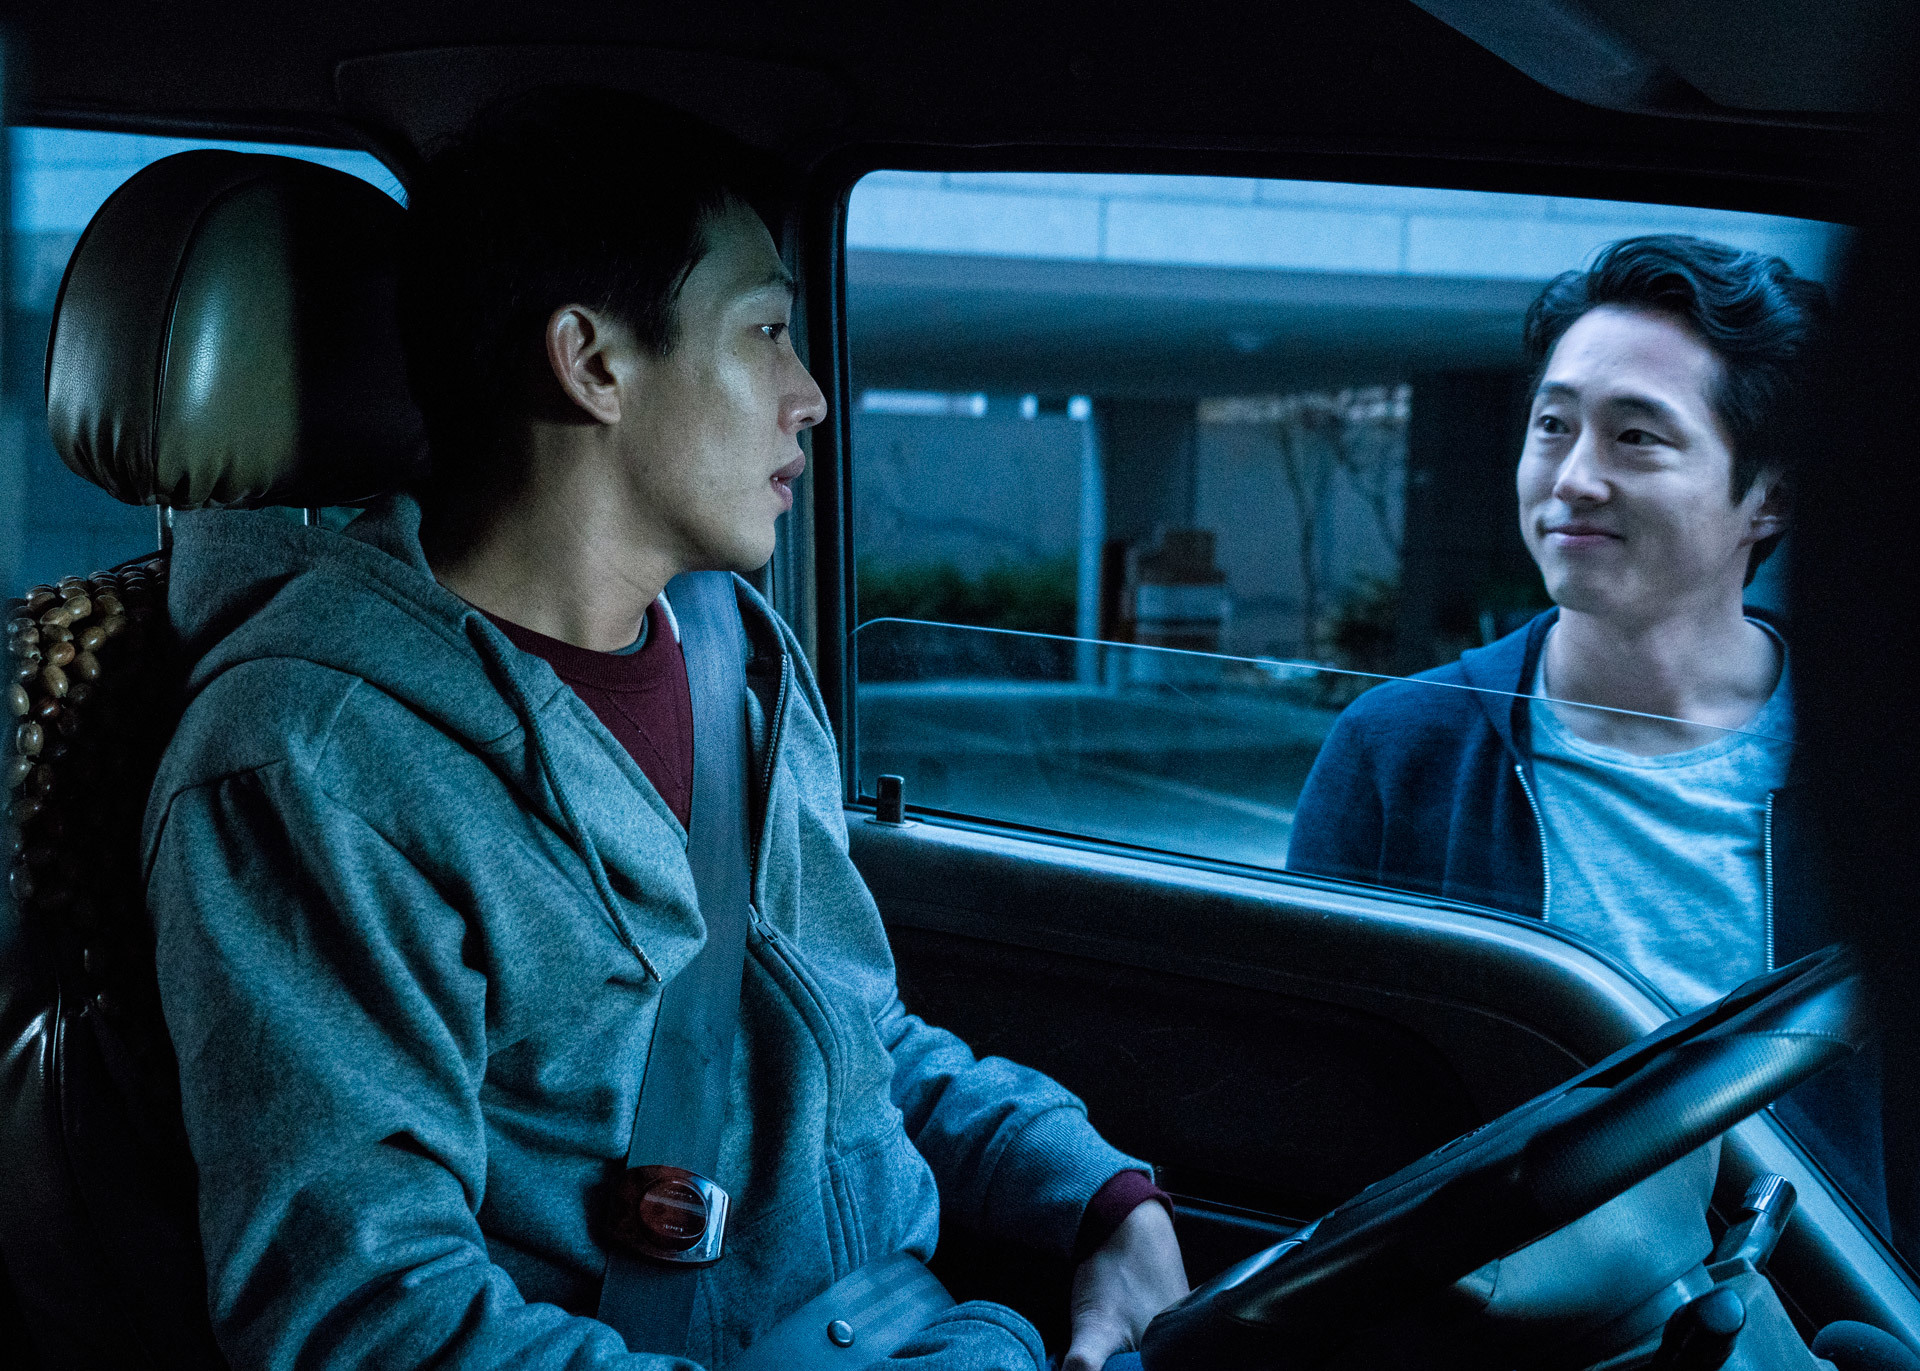 Burning 2018, directed by Lee Chang-Dong | Film review